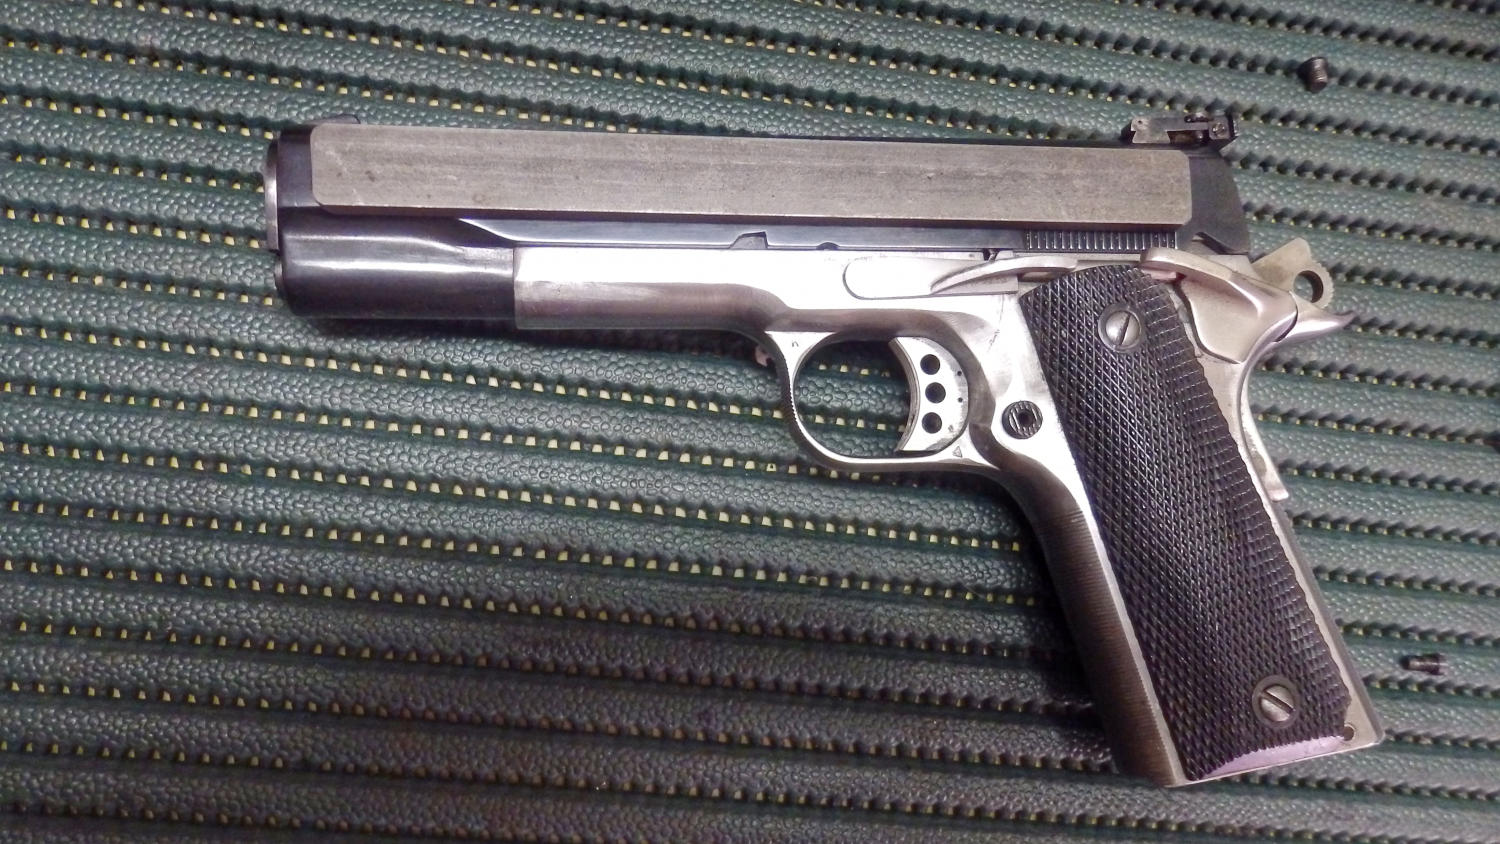 M.R. New System Arms gas retarded 1911.